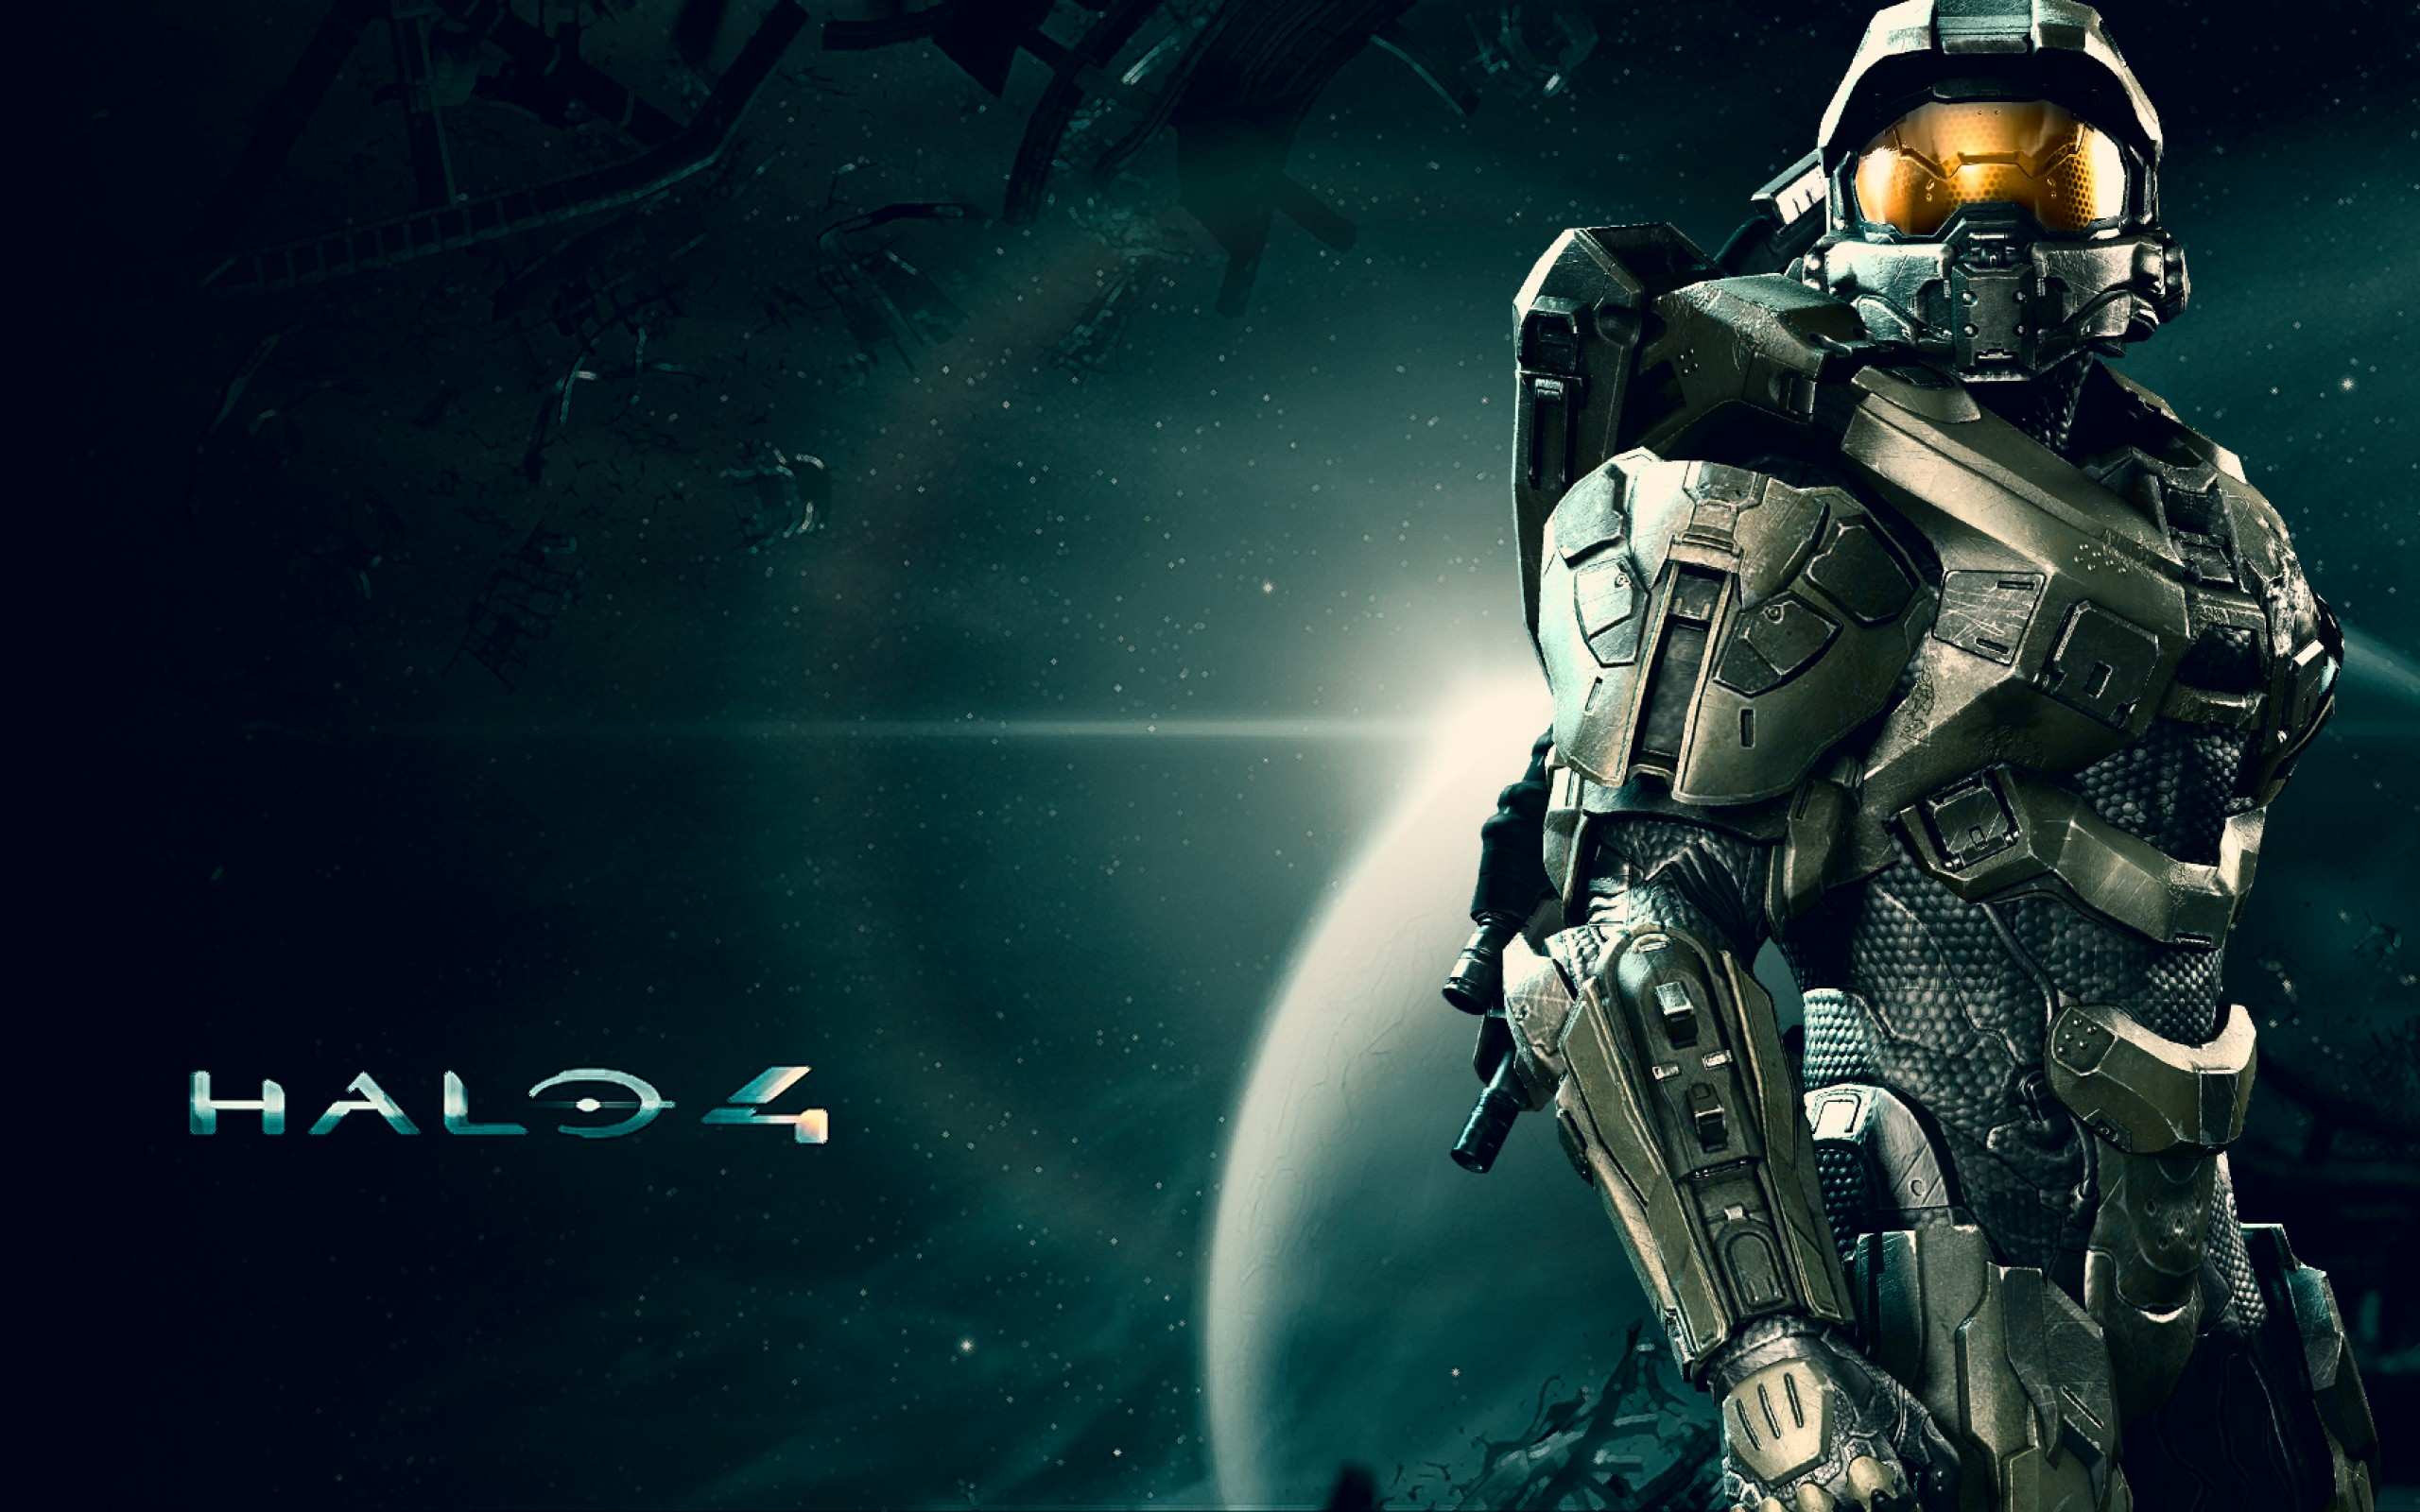 Halo Wallpaper HD download Wallpapers Backgrounds Images Art 2560x1600